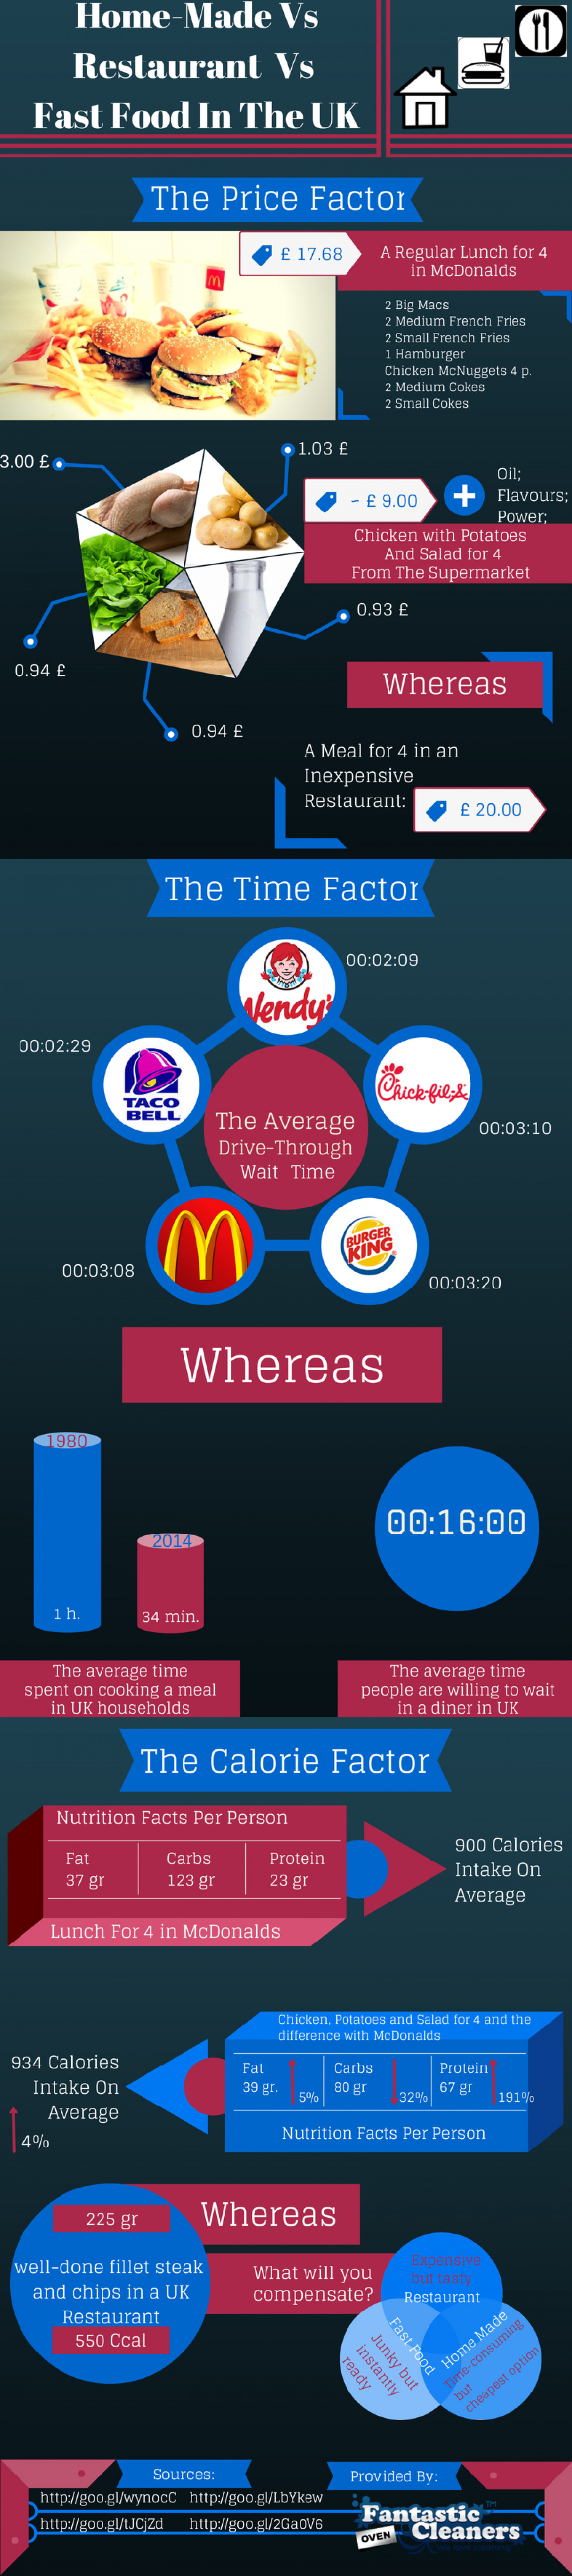 Home-Made Vs Restaurant Vs Fast Food - Pros And Cons Infographic